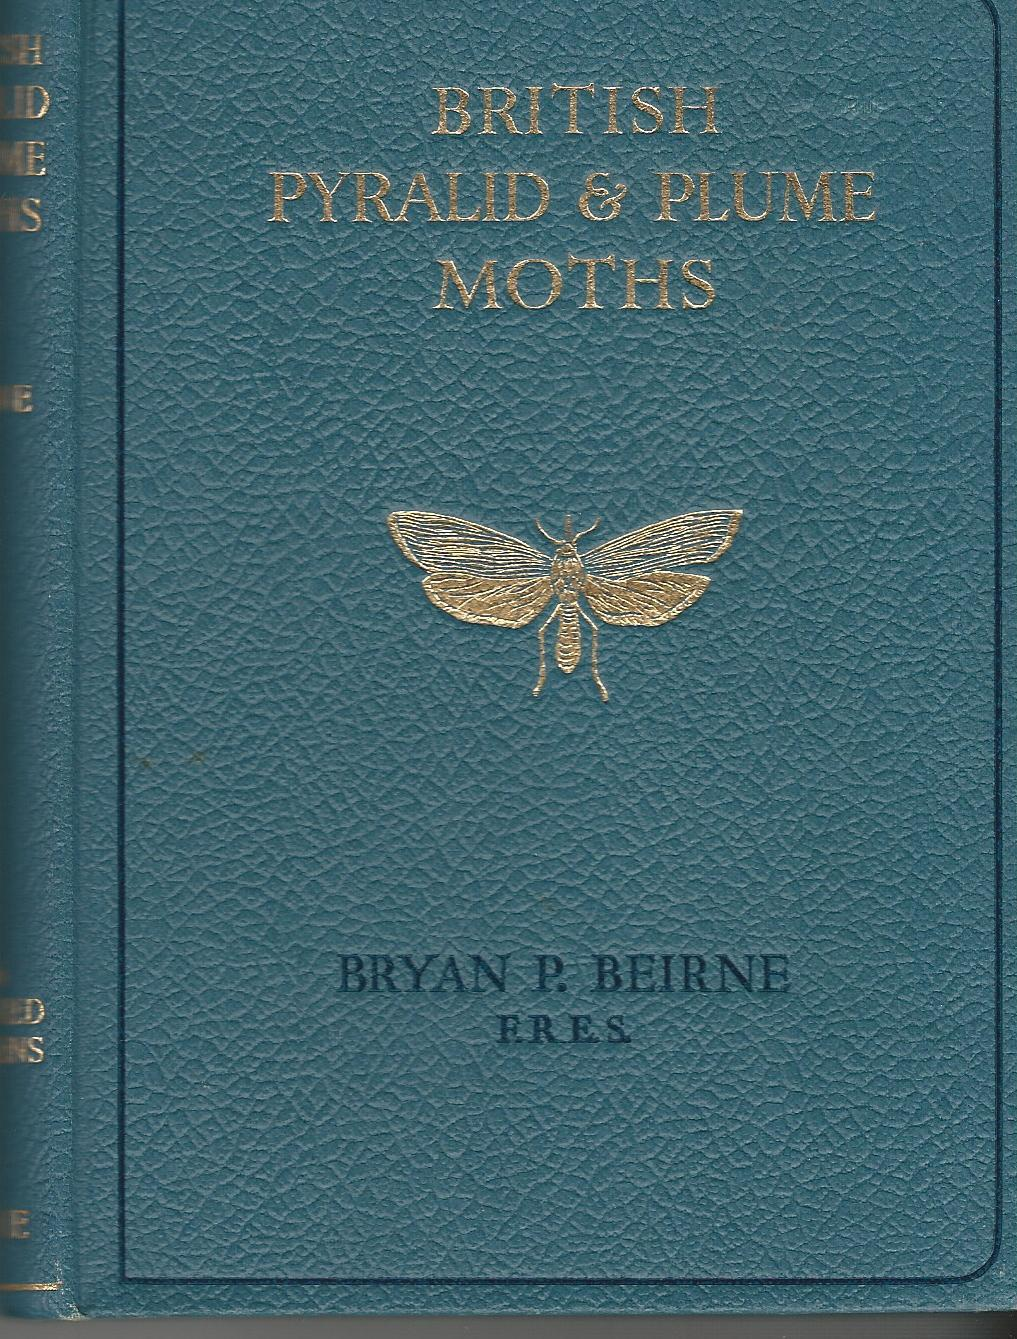 Image for British Pyralid & Plume Moths.